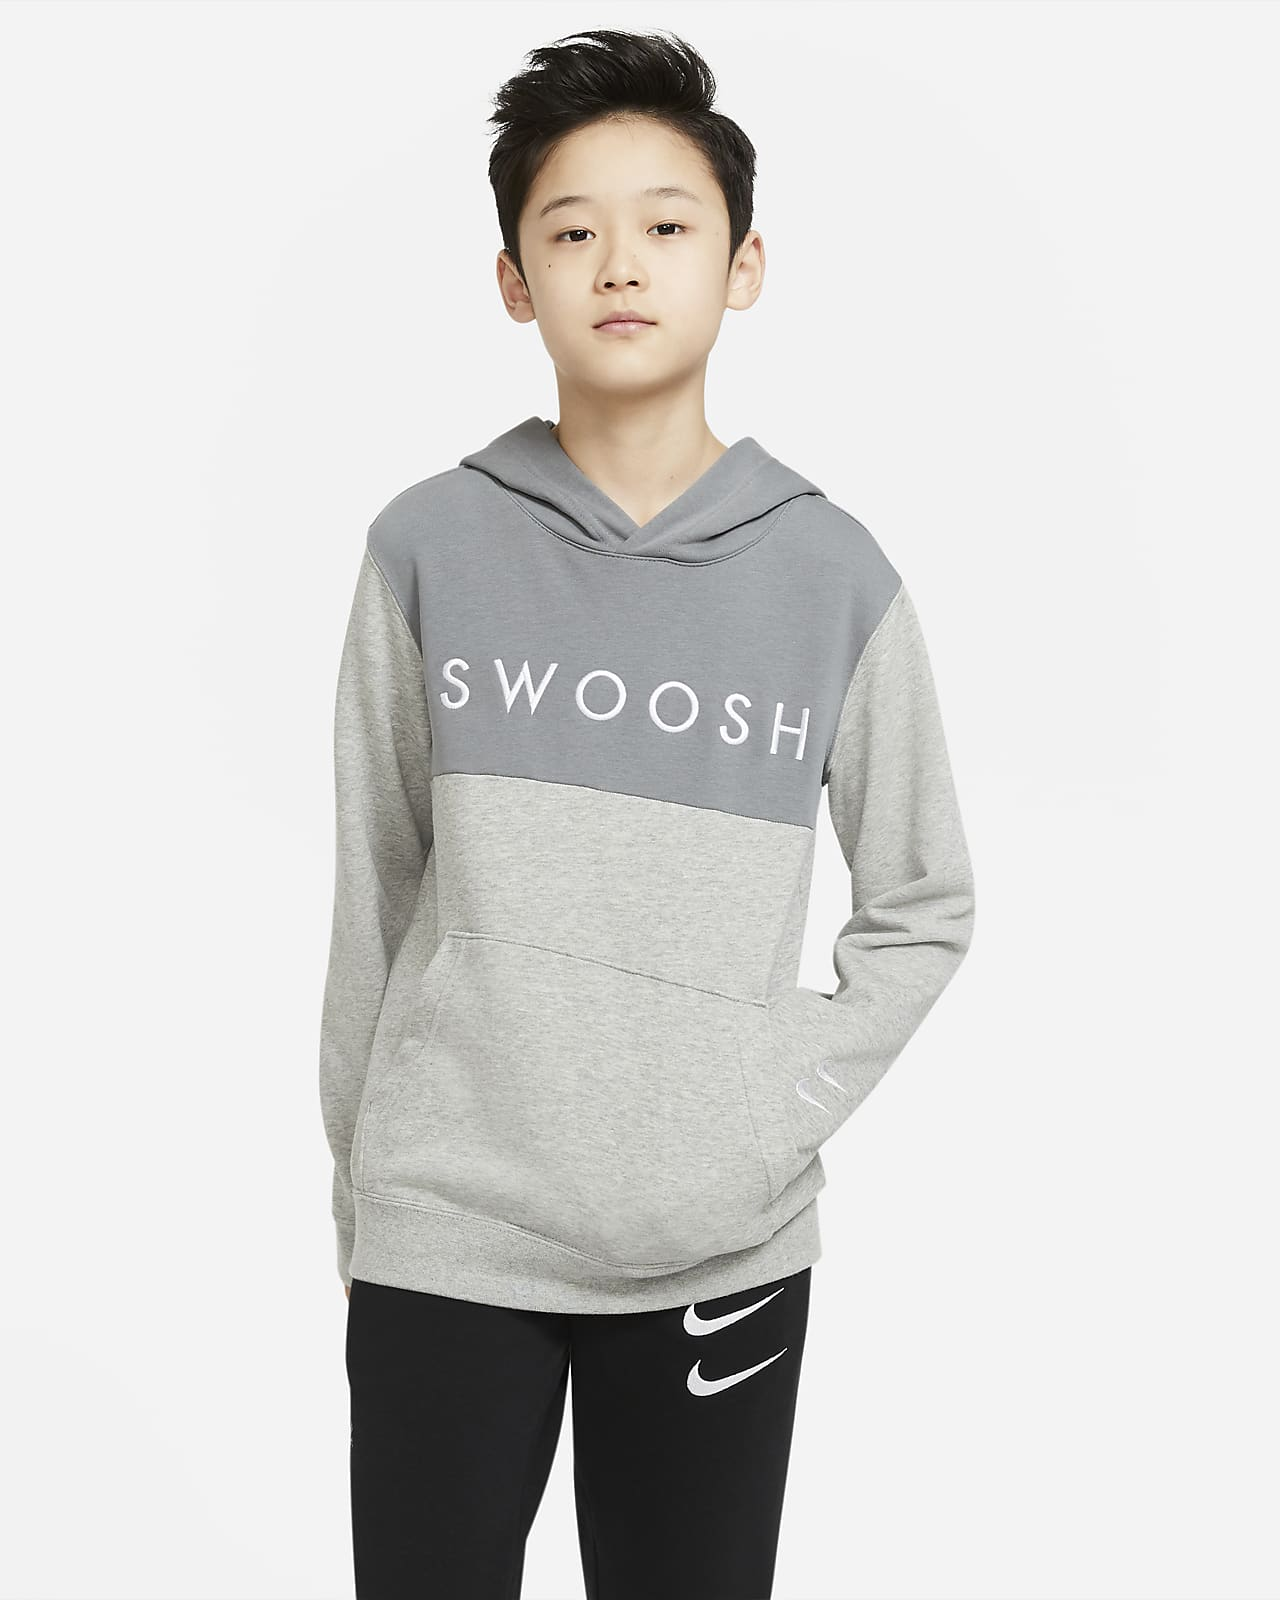 Nike Sportswear Swoosh Older Kids' (Boys') French Terry Hoodie